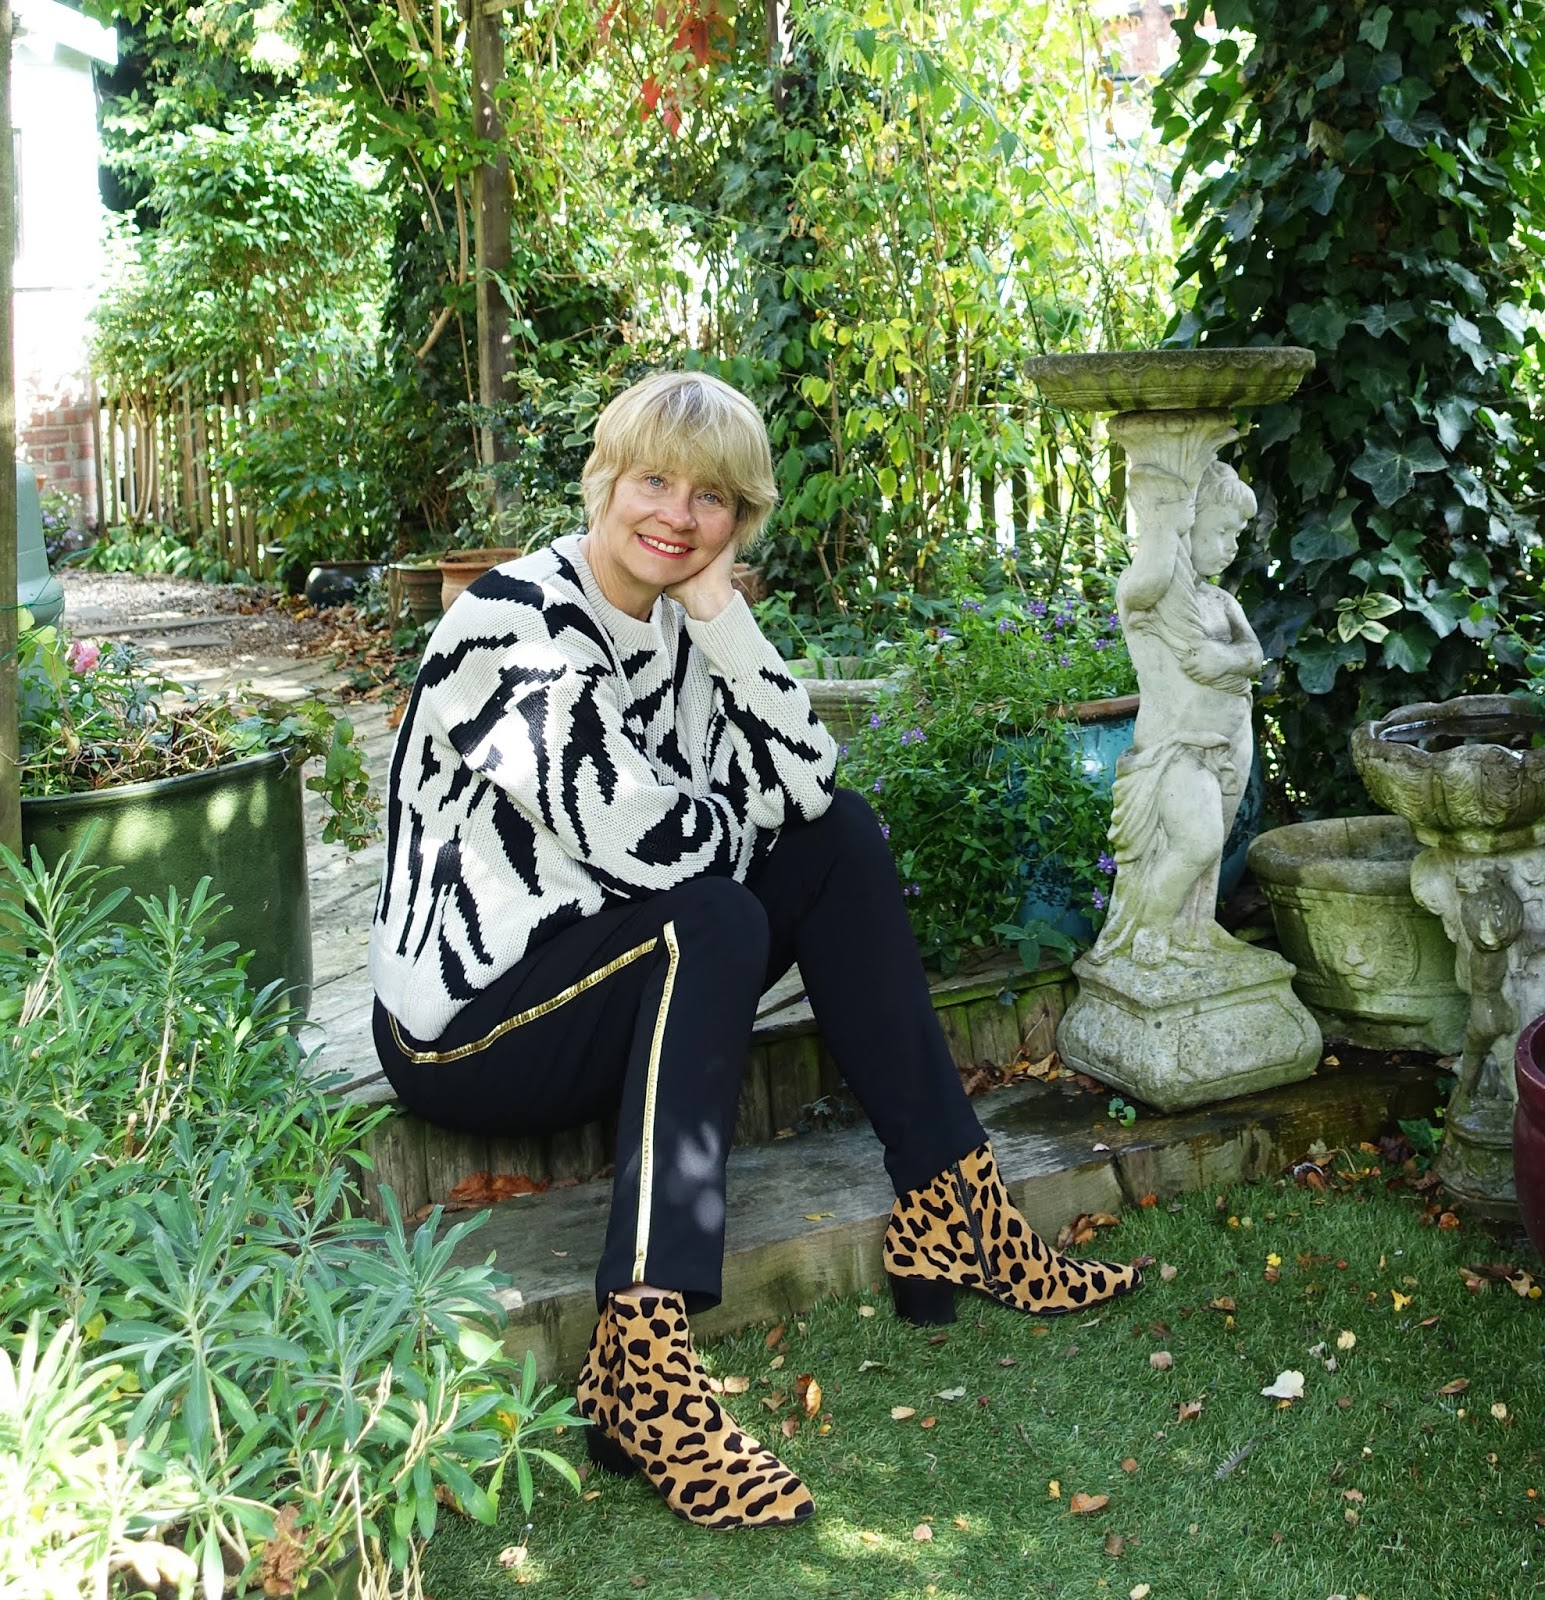 Over 45s blogger Gail Hanlon mixing animal prints with a zebra jumper from Asos and leopard print ankle boots from Office, worn with black trousers with a gold side stripe